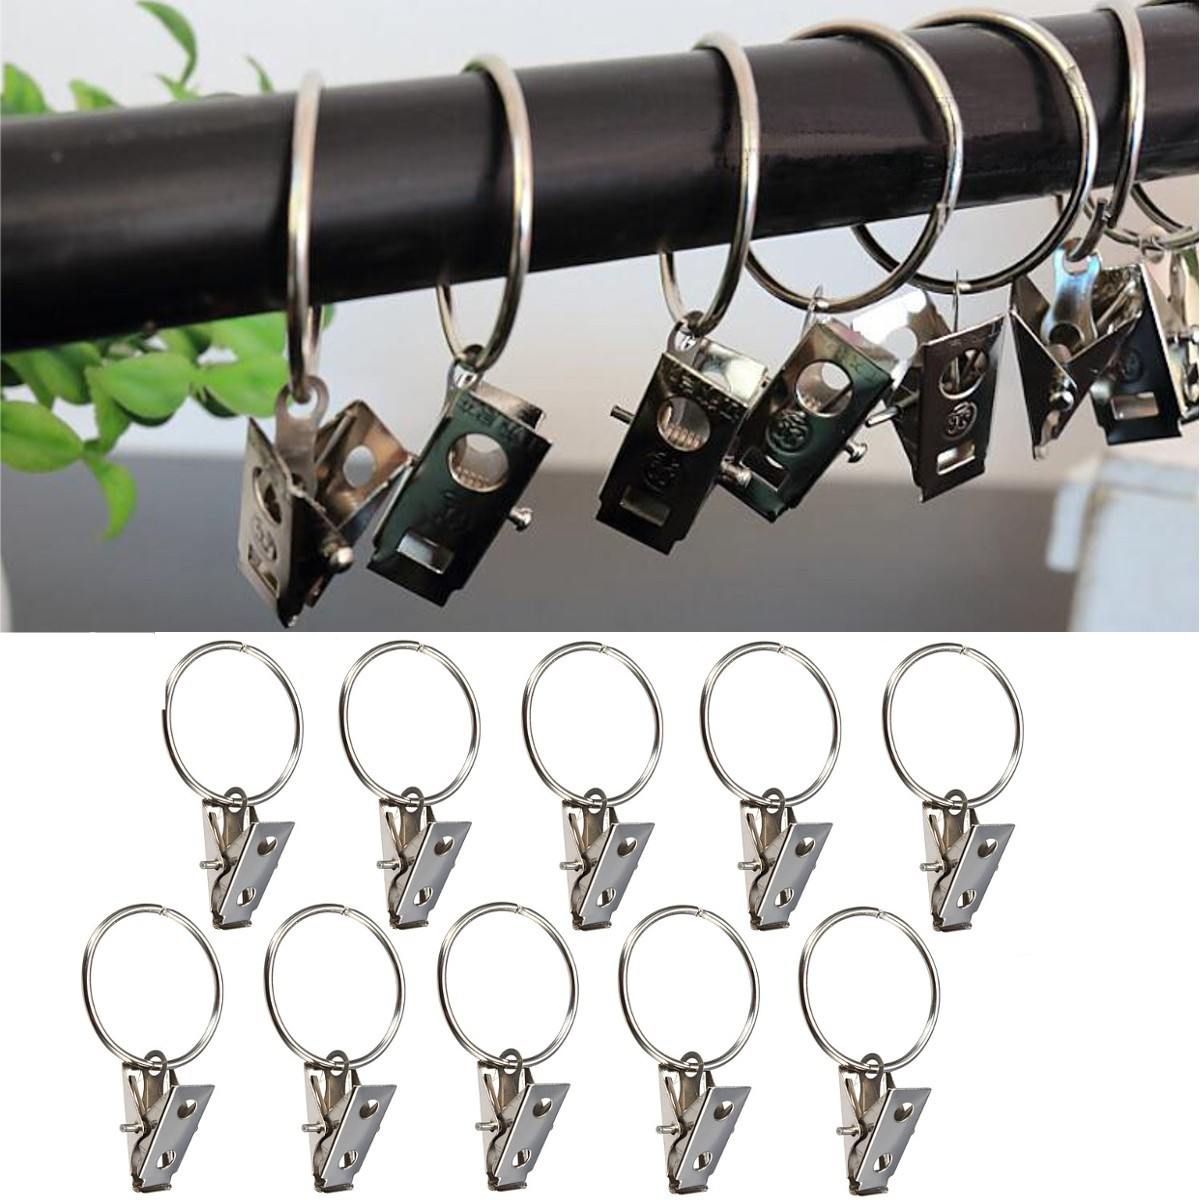 10pcs Metal Shower Curtain Rod Hook with Clip